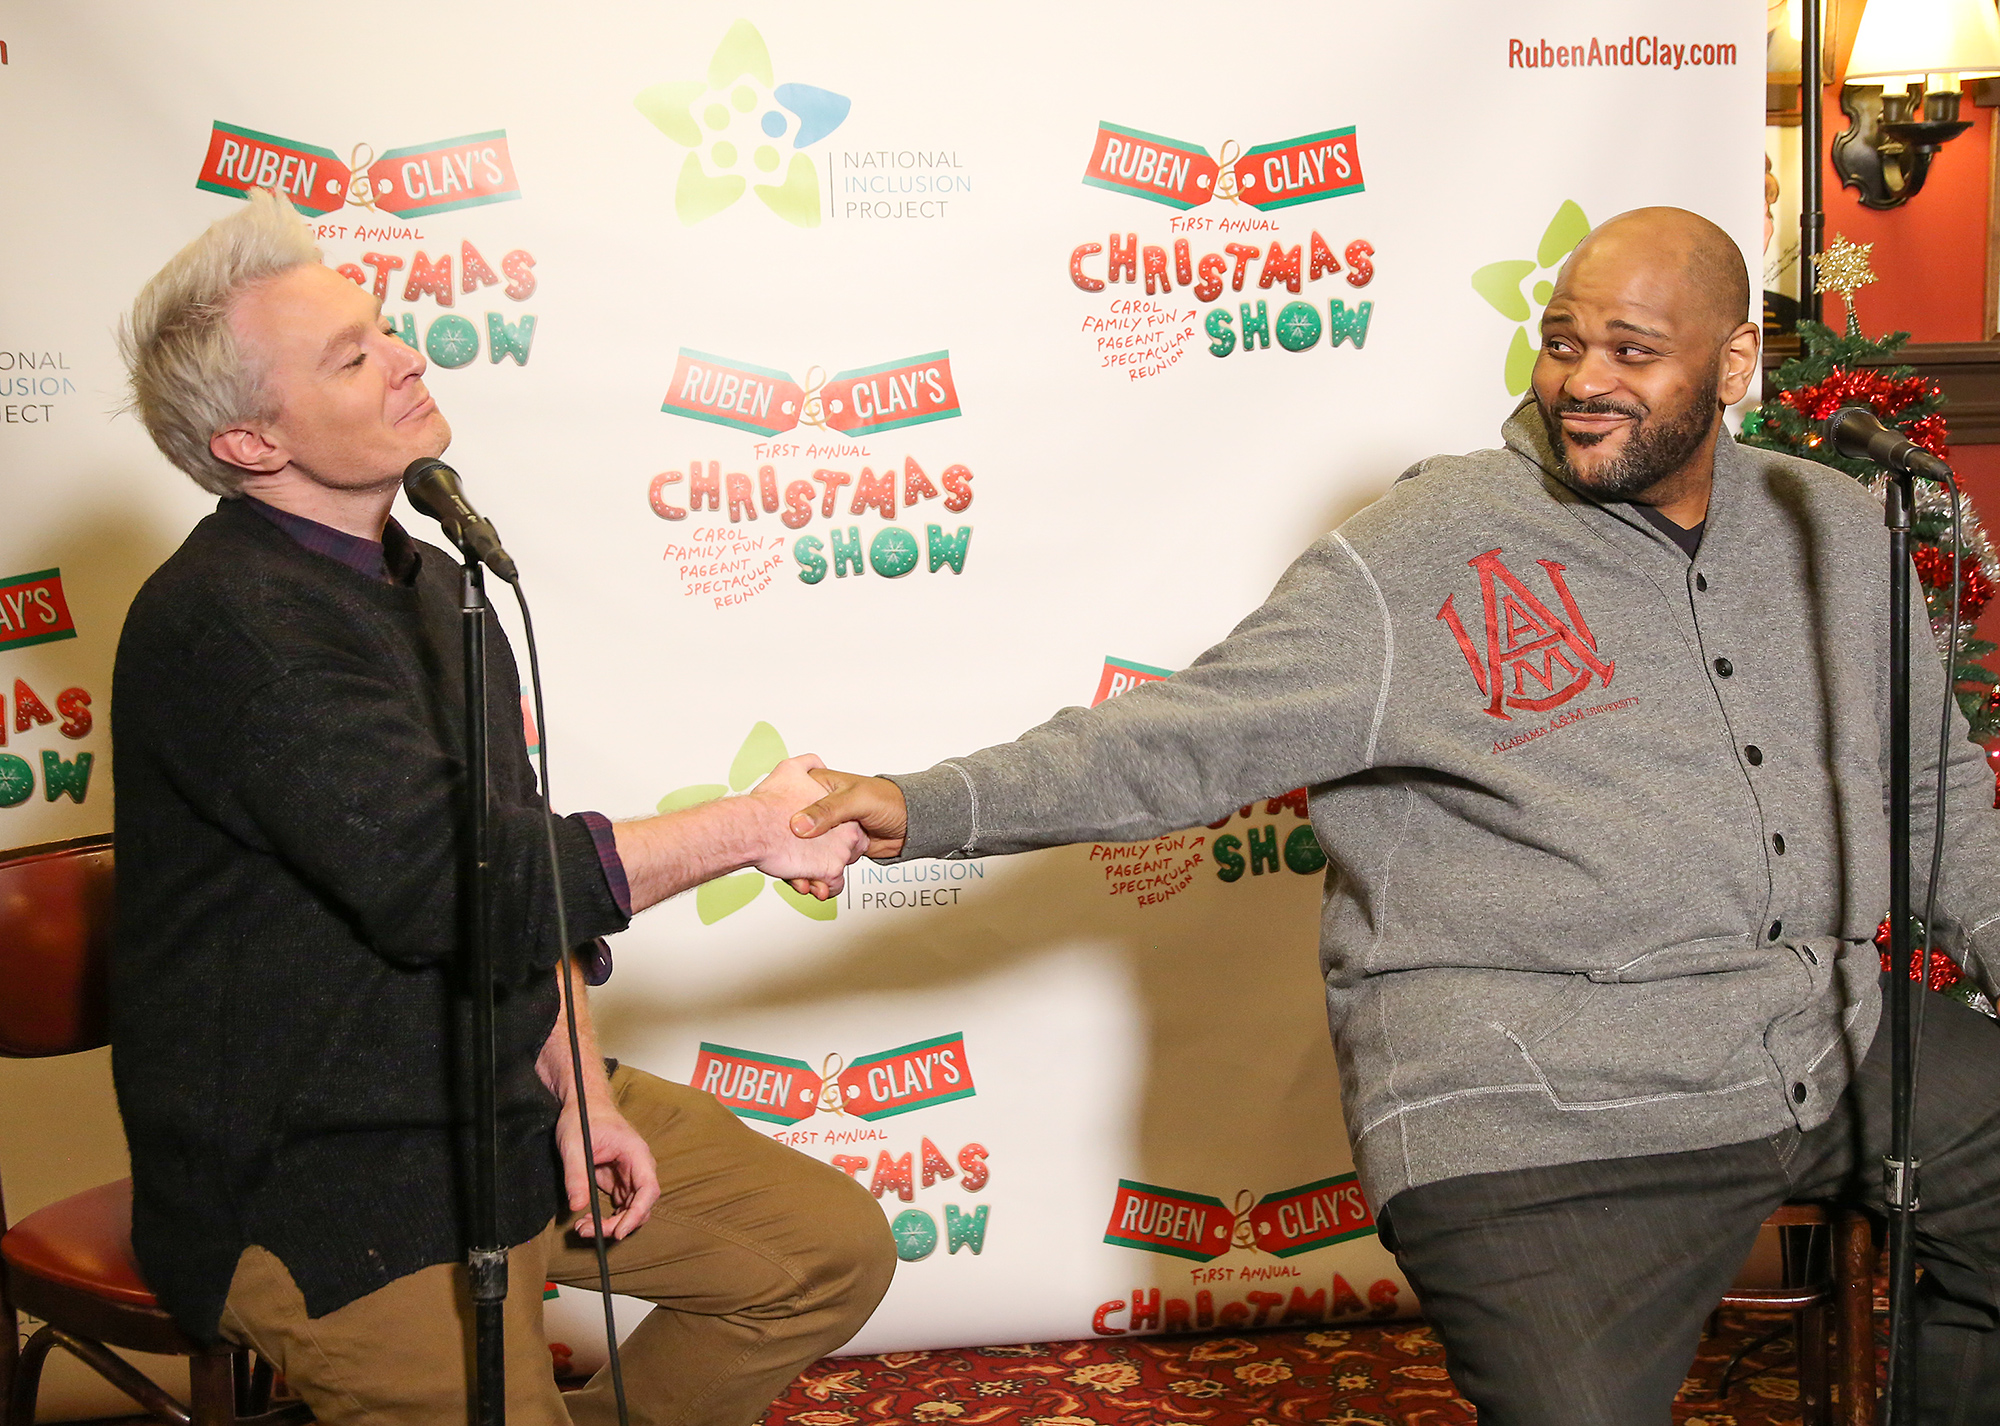 Ruben & Clay's First Annual Christmas Carol Family Fun Pageant Spectacular Reunion Show Photo Call